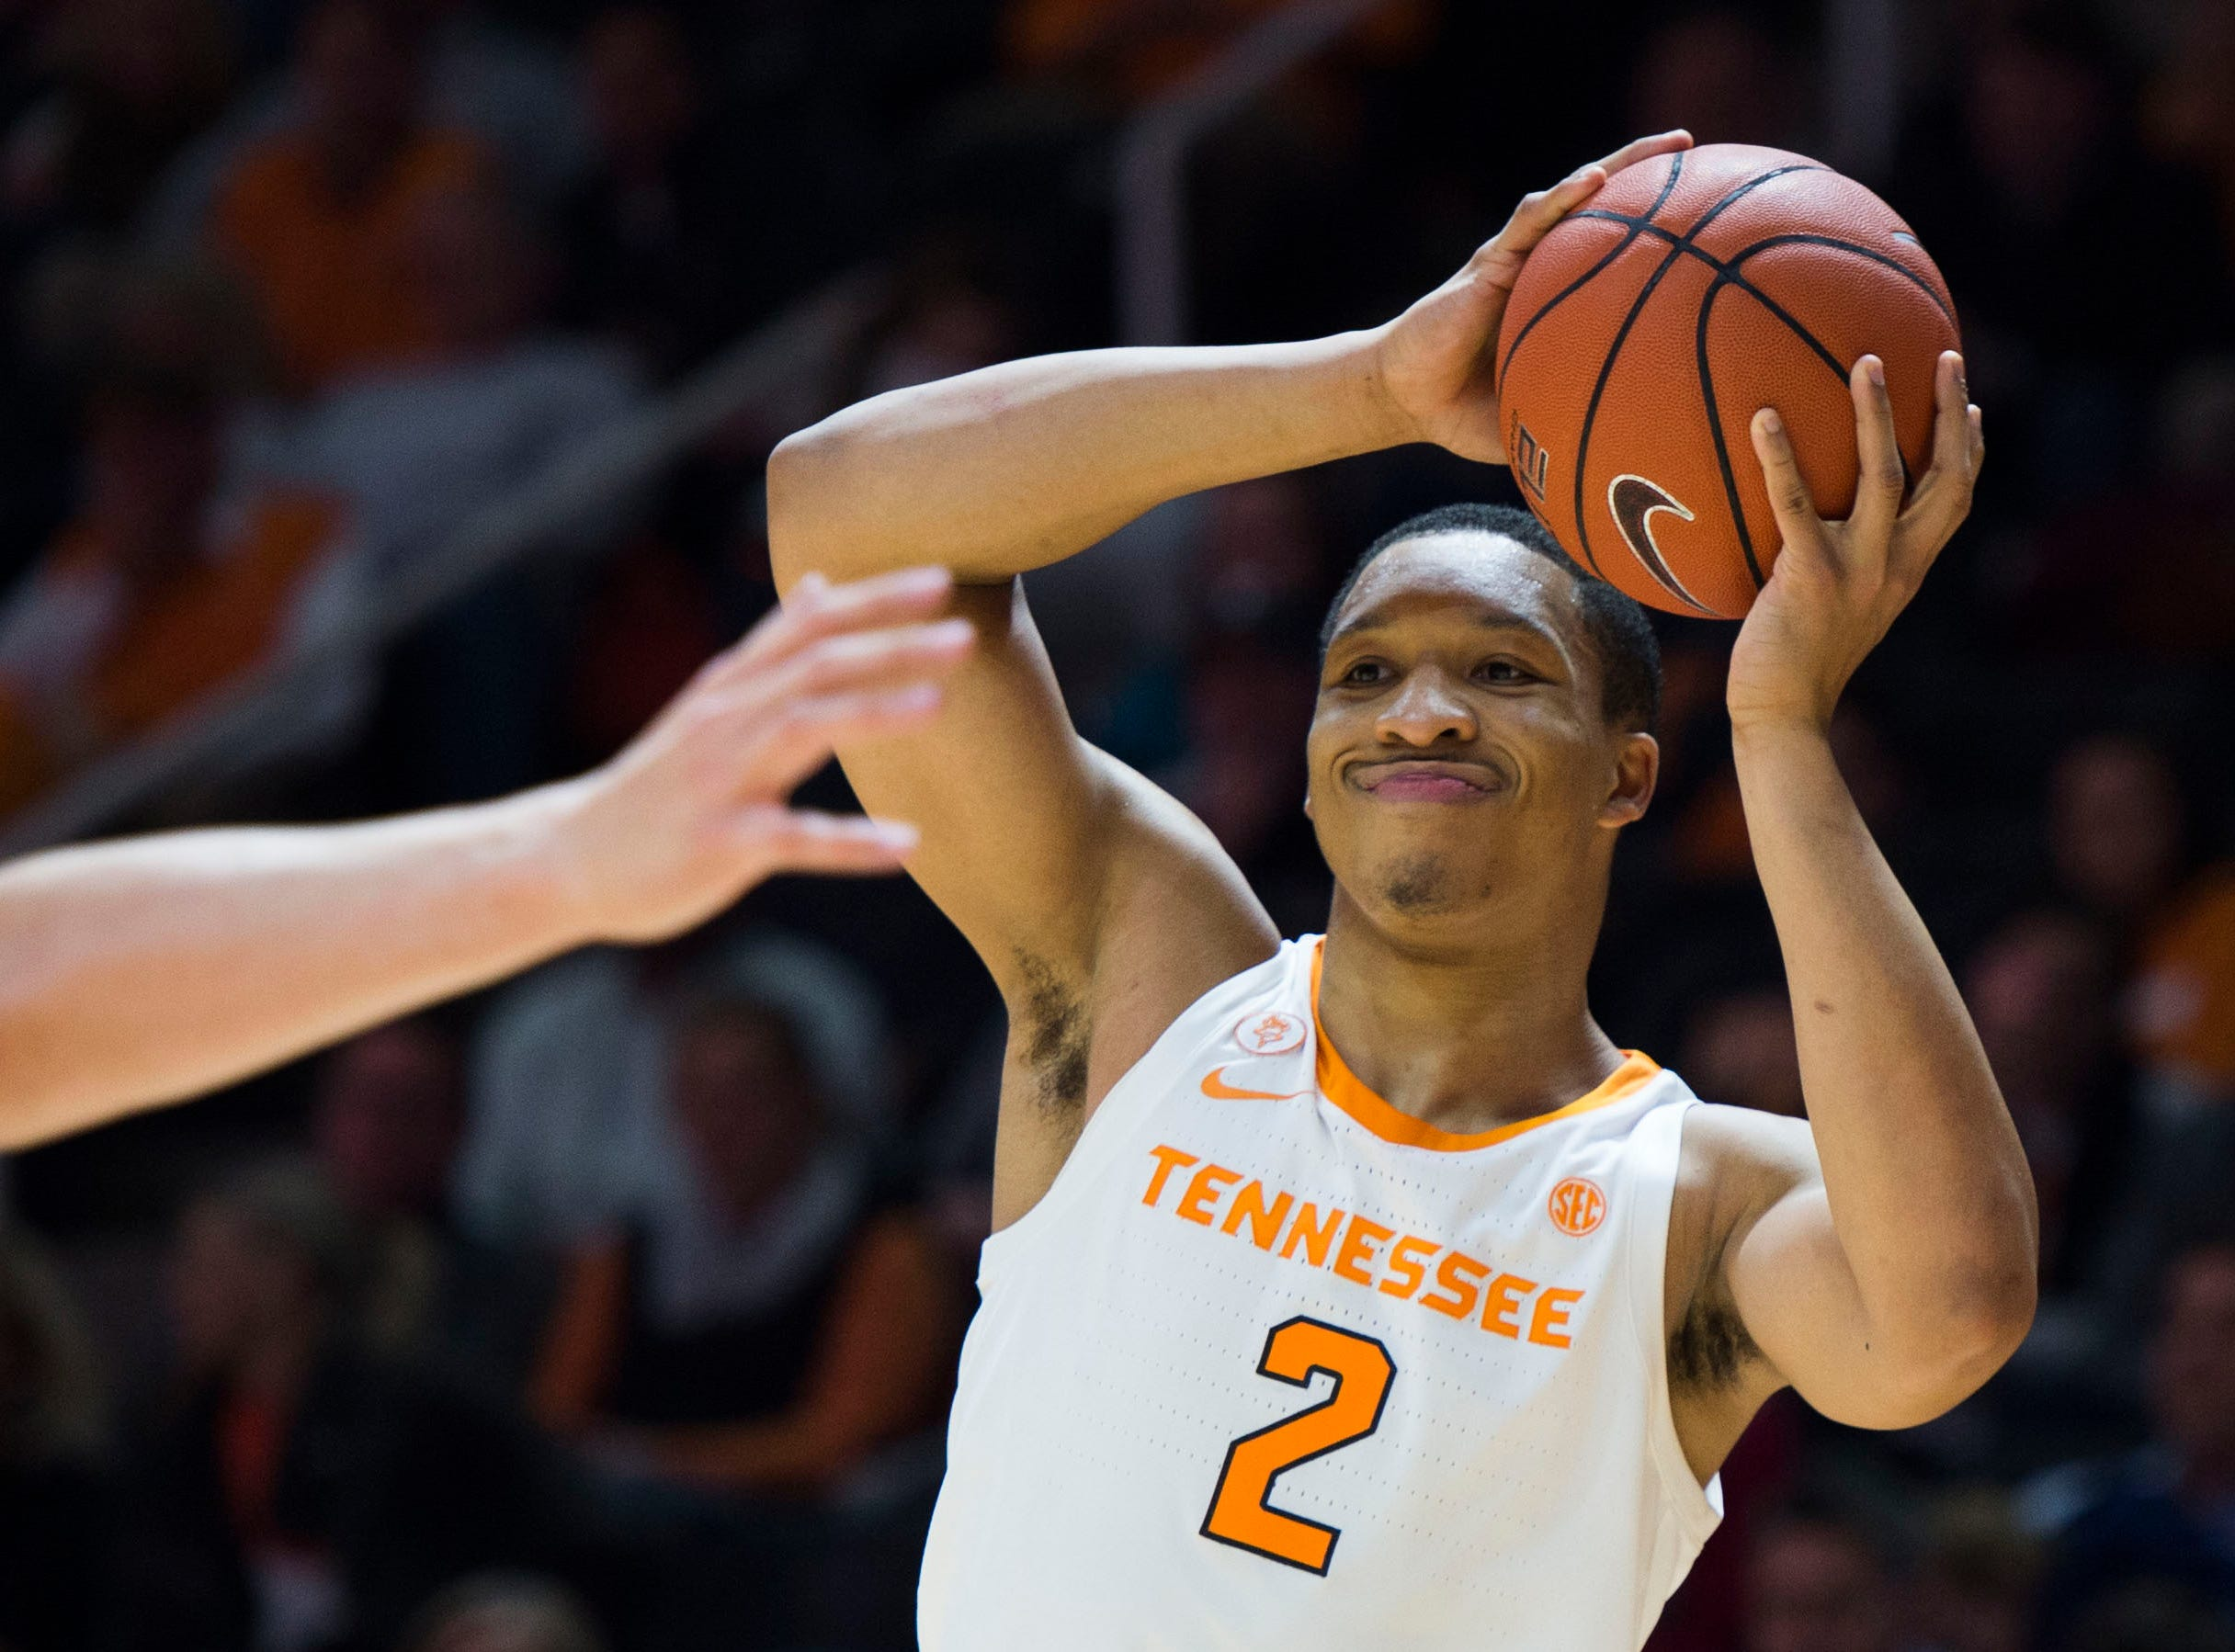 Tennessee's Grant Williams (2) looks to pass during the first half of a NCAA men's basketball game between Tennessee and Eastern Kentucky University at Thompson-Boling Arena Wednesday, Nov. 28, 2018.